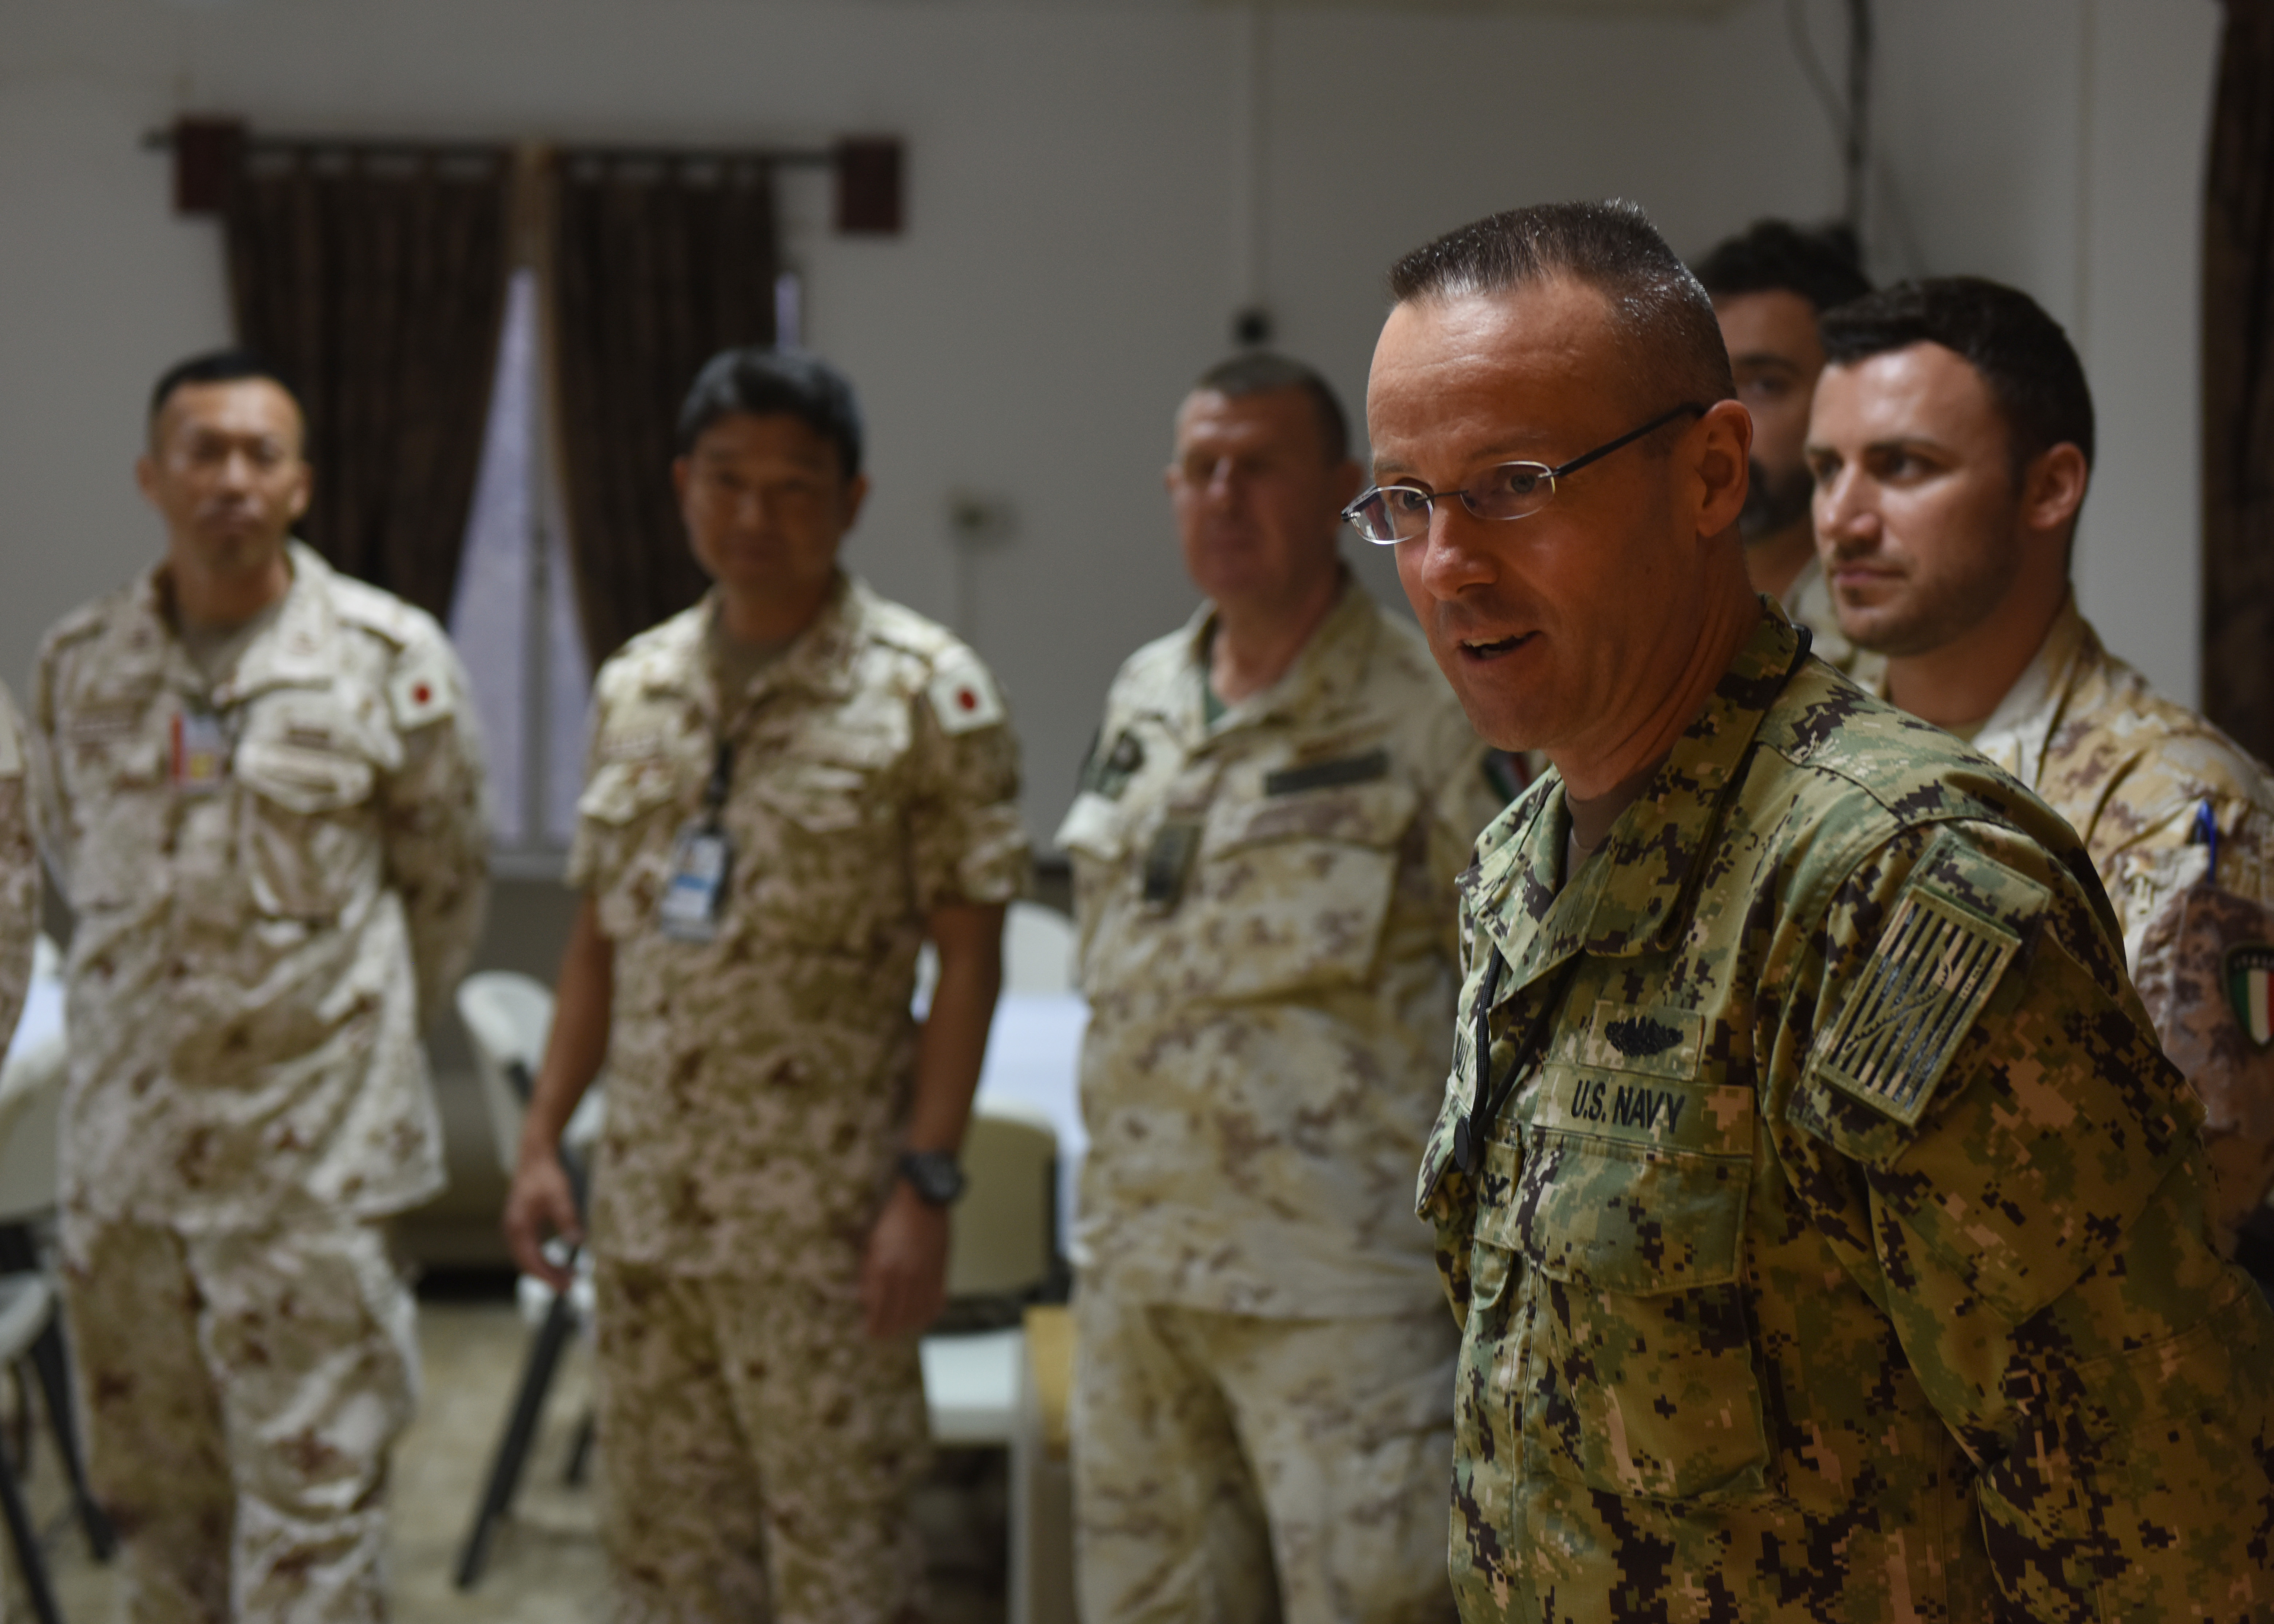 U.S. Navy Capt. Thomas Wall, chief of staff of Combined Joint Task Force-Horn of Africa (CJTF-HOA), bids farewell to multinational military partners during a CJTF-HOA cultural exchange event at Camp Lemonnier, Djibouti, April 24, 2019. CJTF-HOA holds monthly exchange events with multinational military partners affiliated with Camp Lemonnier to strengthen alliances and attract new partners in the combined joint military environment. (U.S. Air Force Photo by Staff Sgt. Franklin R. Ramos)